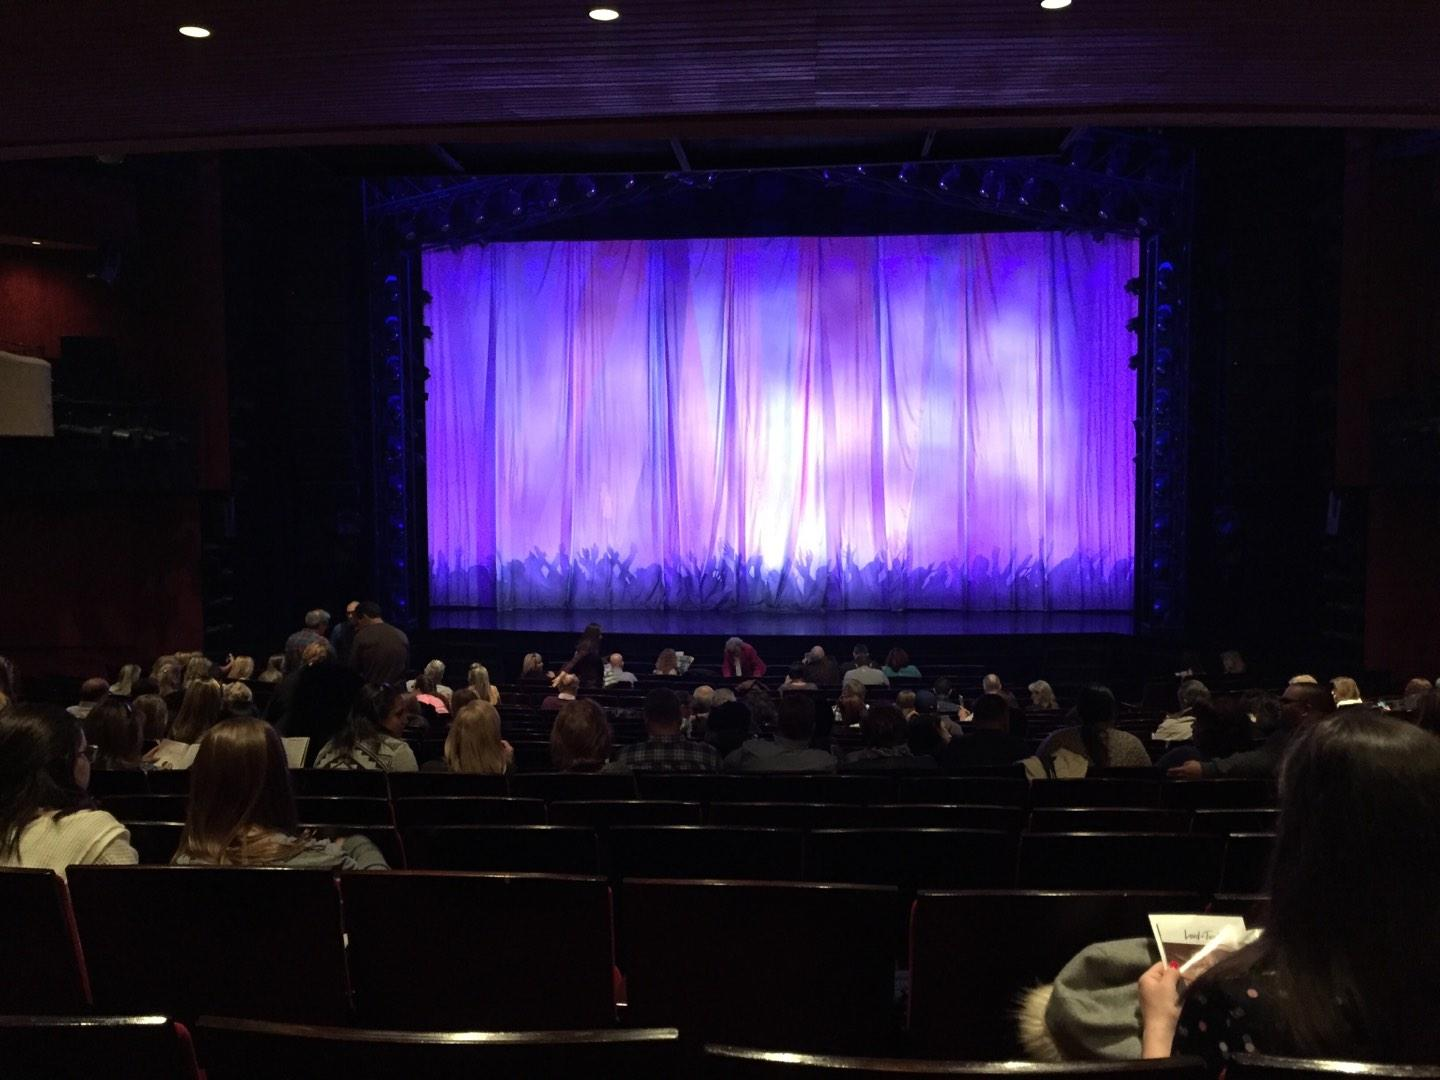 Marquis Theatre Section Orchestra C Row U Seat 115